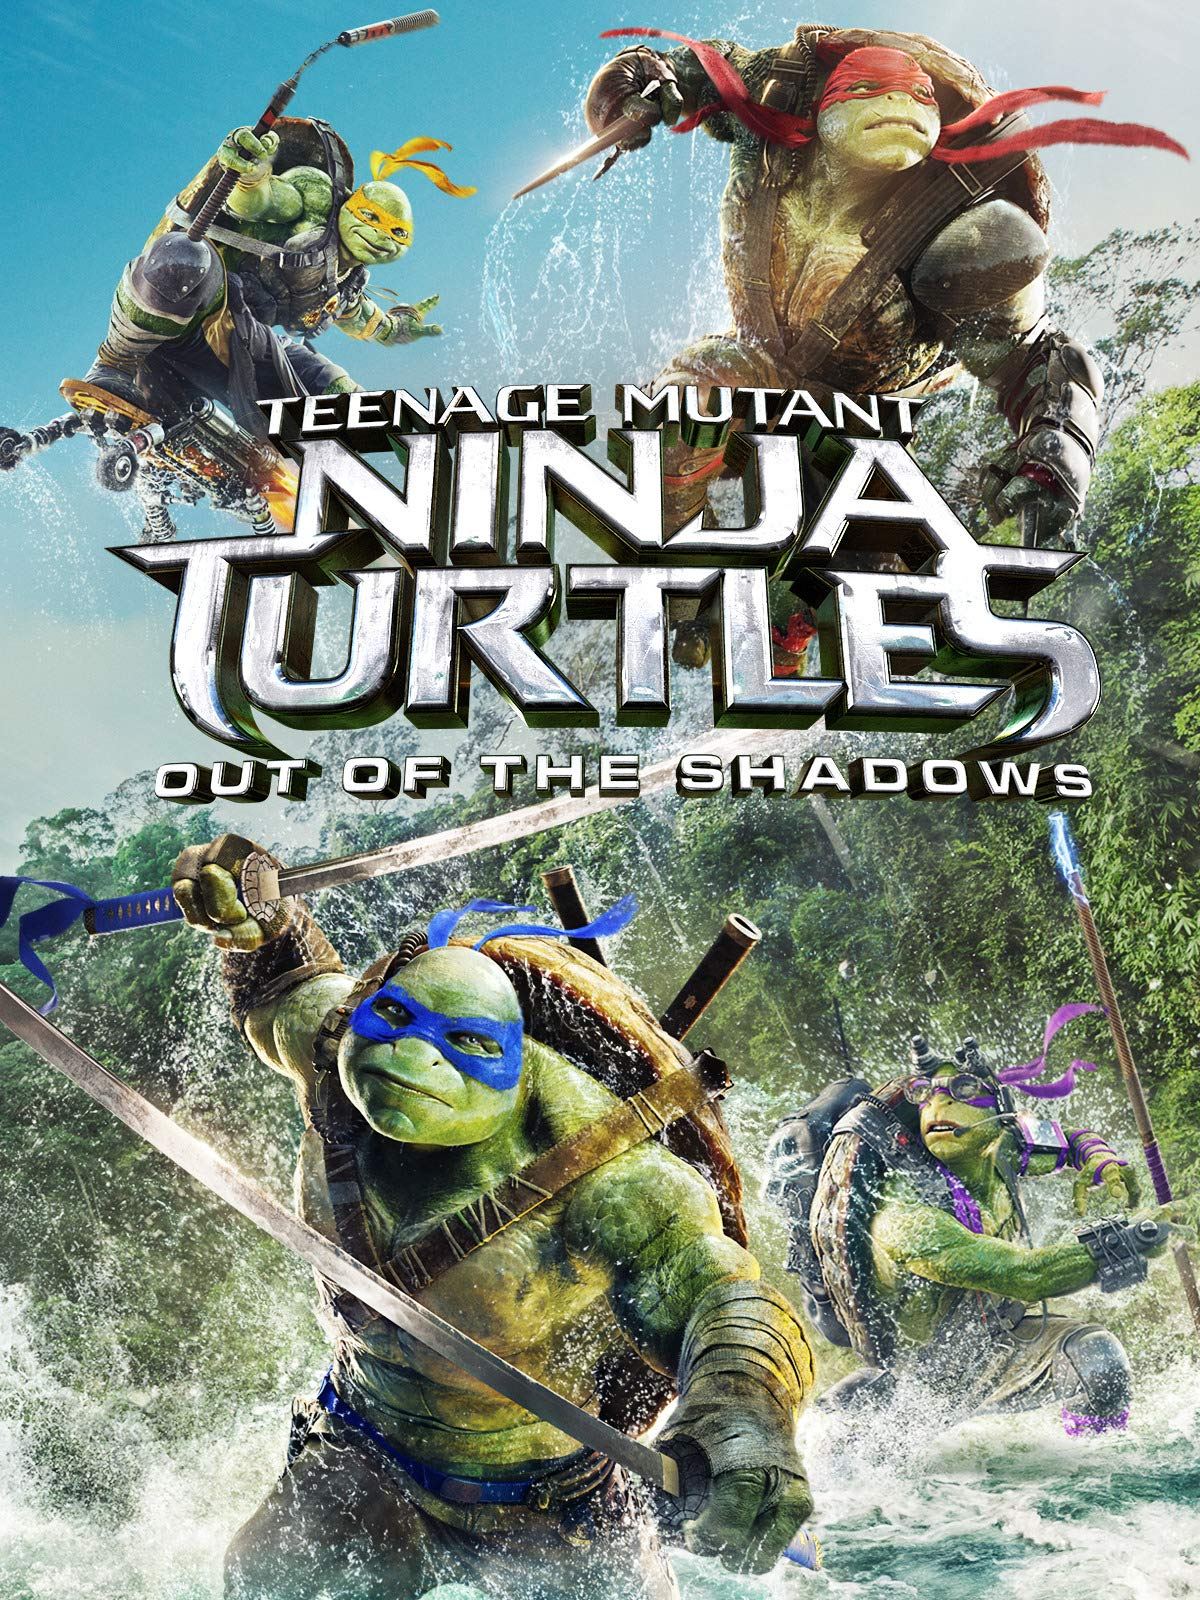 Teenage Mutant Ninja Turtles: Out Of The Shadows on Amazon Prime Video UK